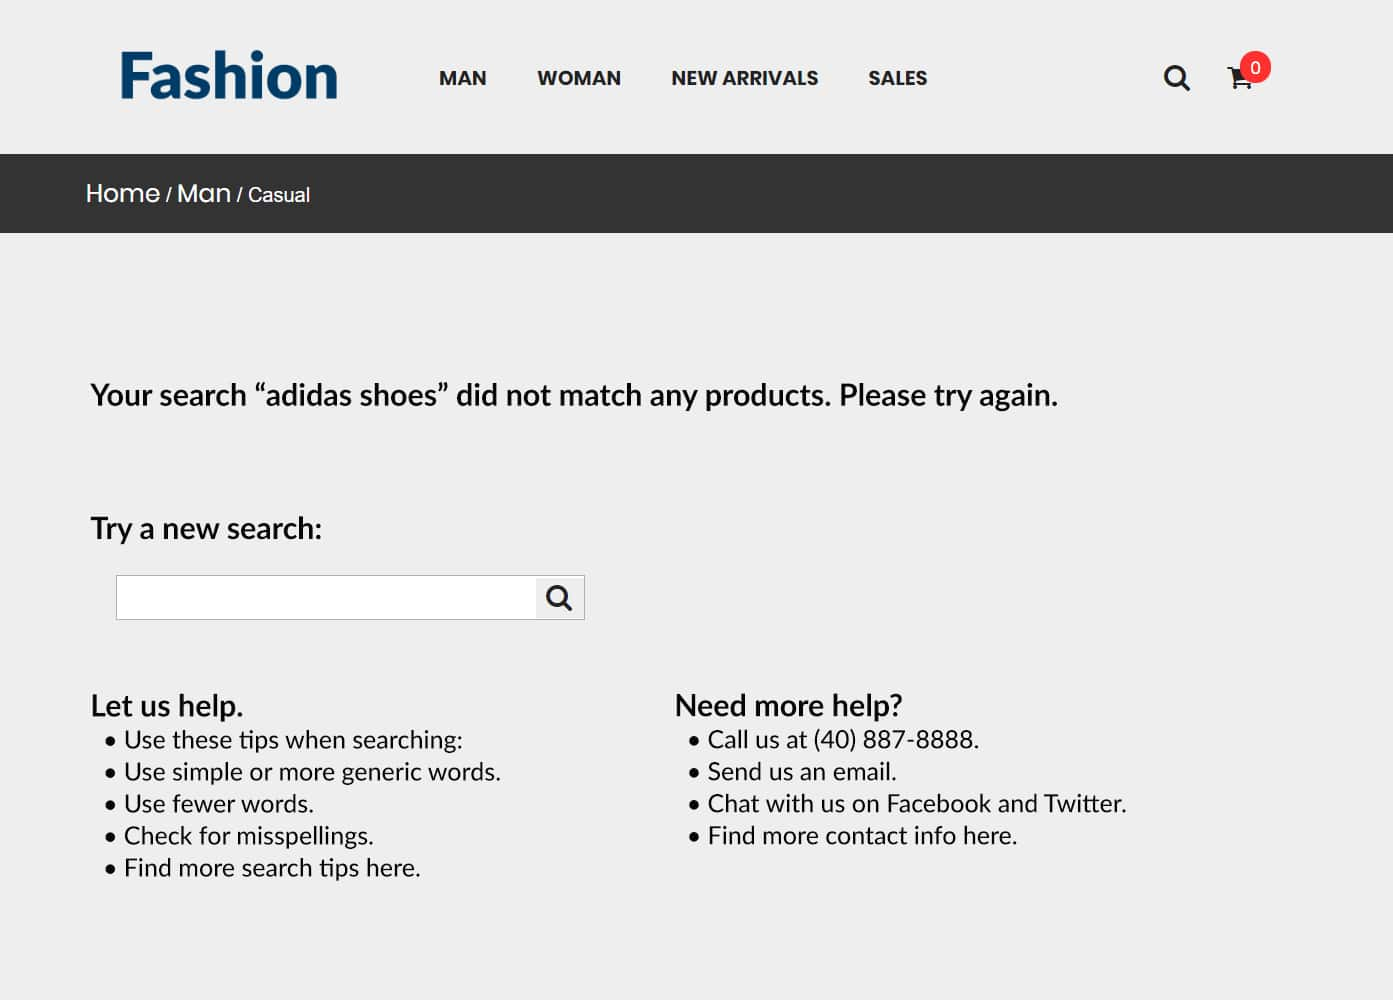 Your search did not match any products